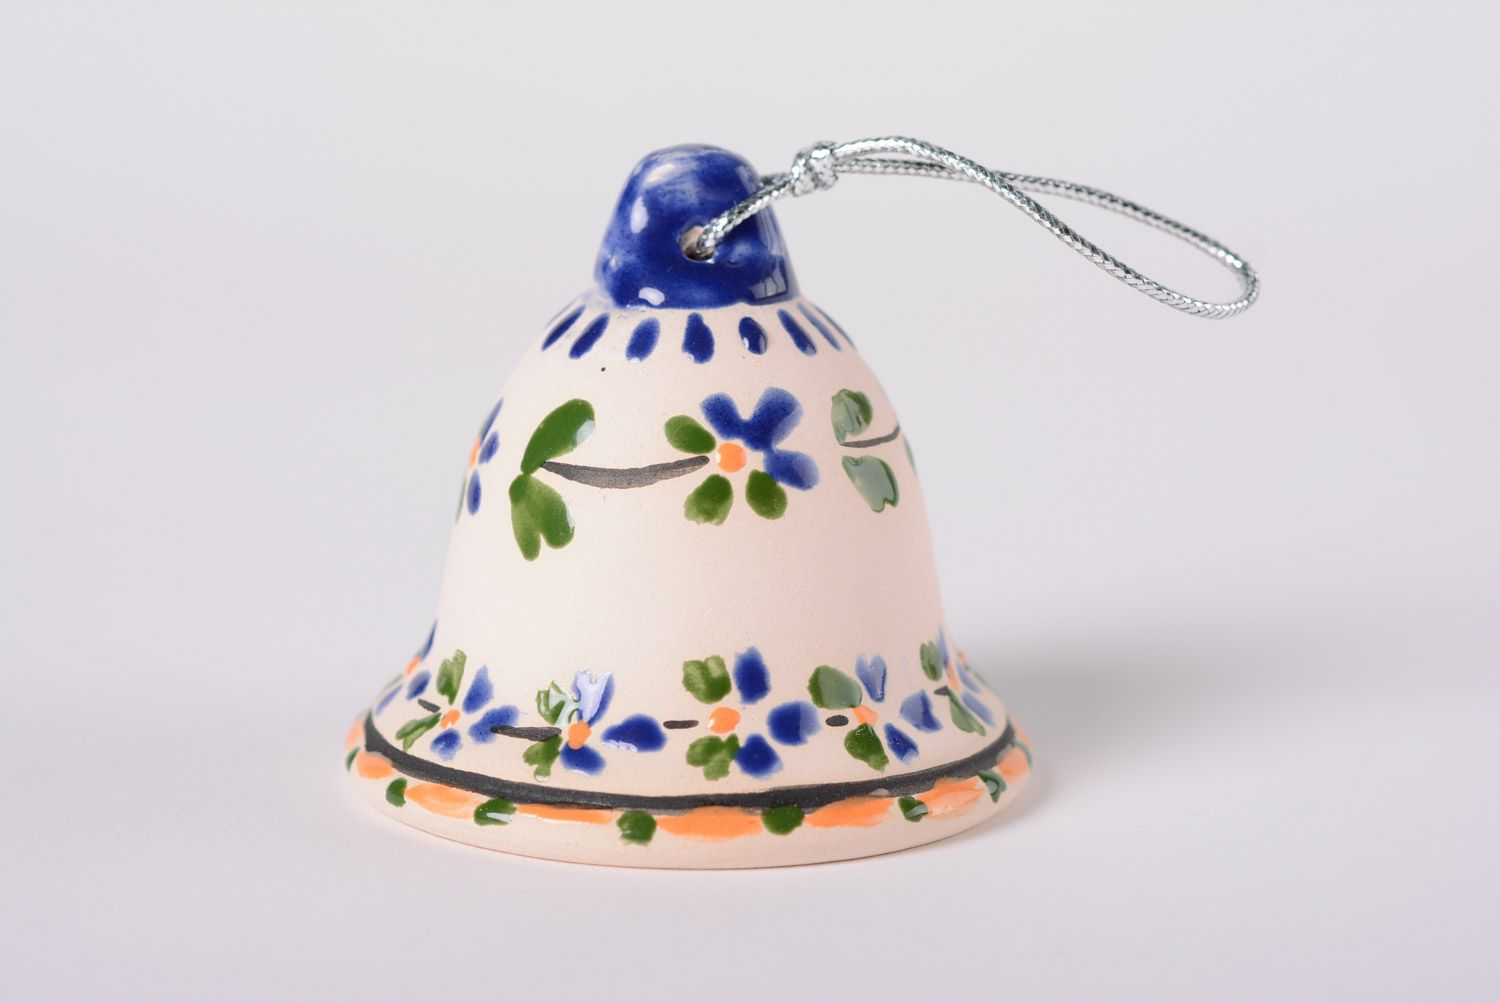 Handmade ceramic bell with painting majolica style with a loop interior decor ideas photo 1